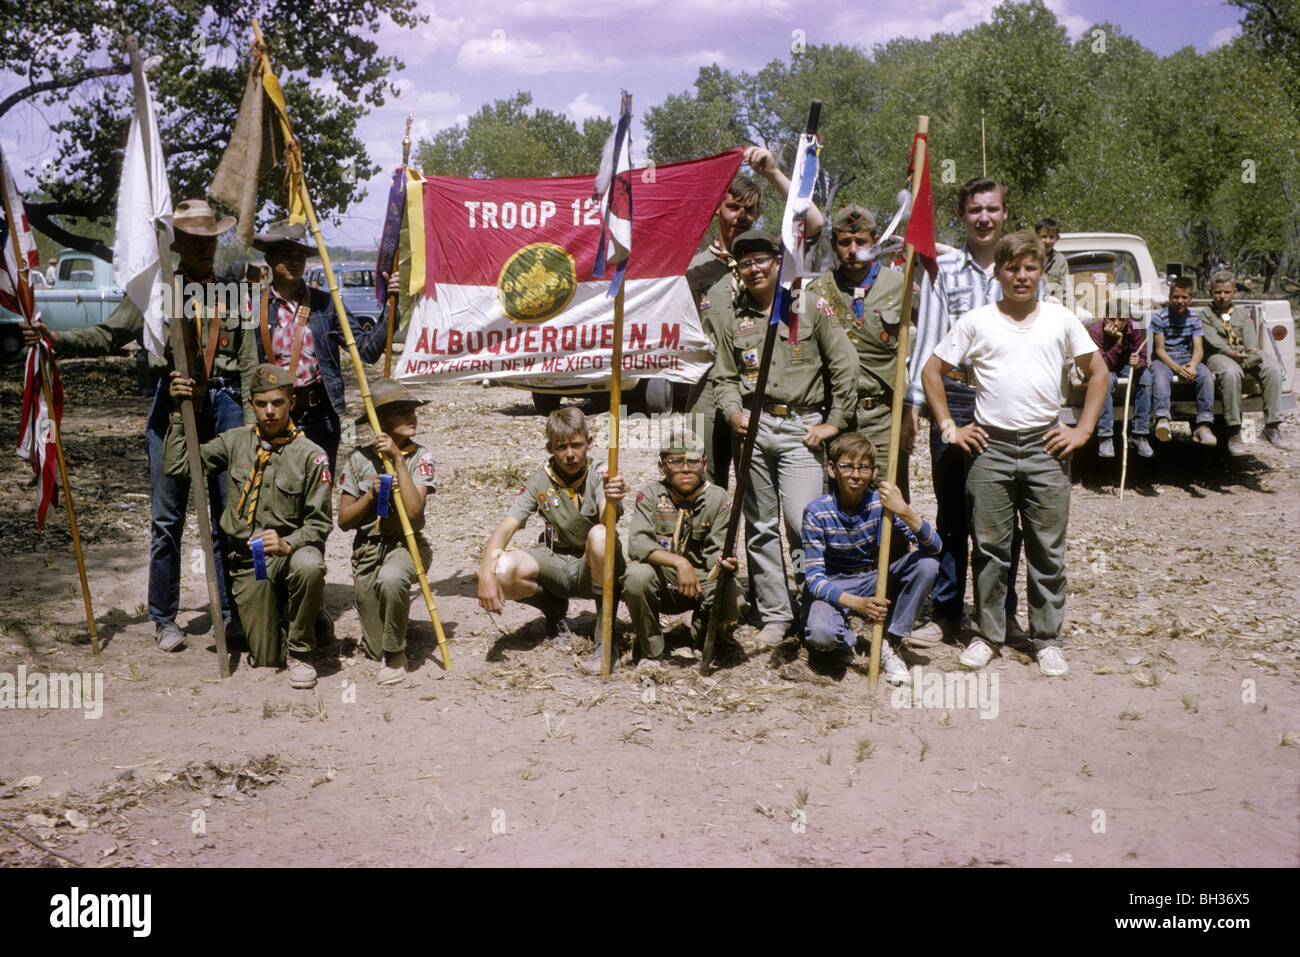 Boy Scout Troop 123 poses for a group photo during a 1965 Camporee at Sandia Reservation in New Mexico. - Stock Image